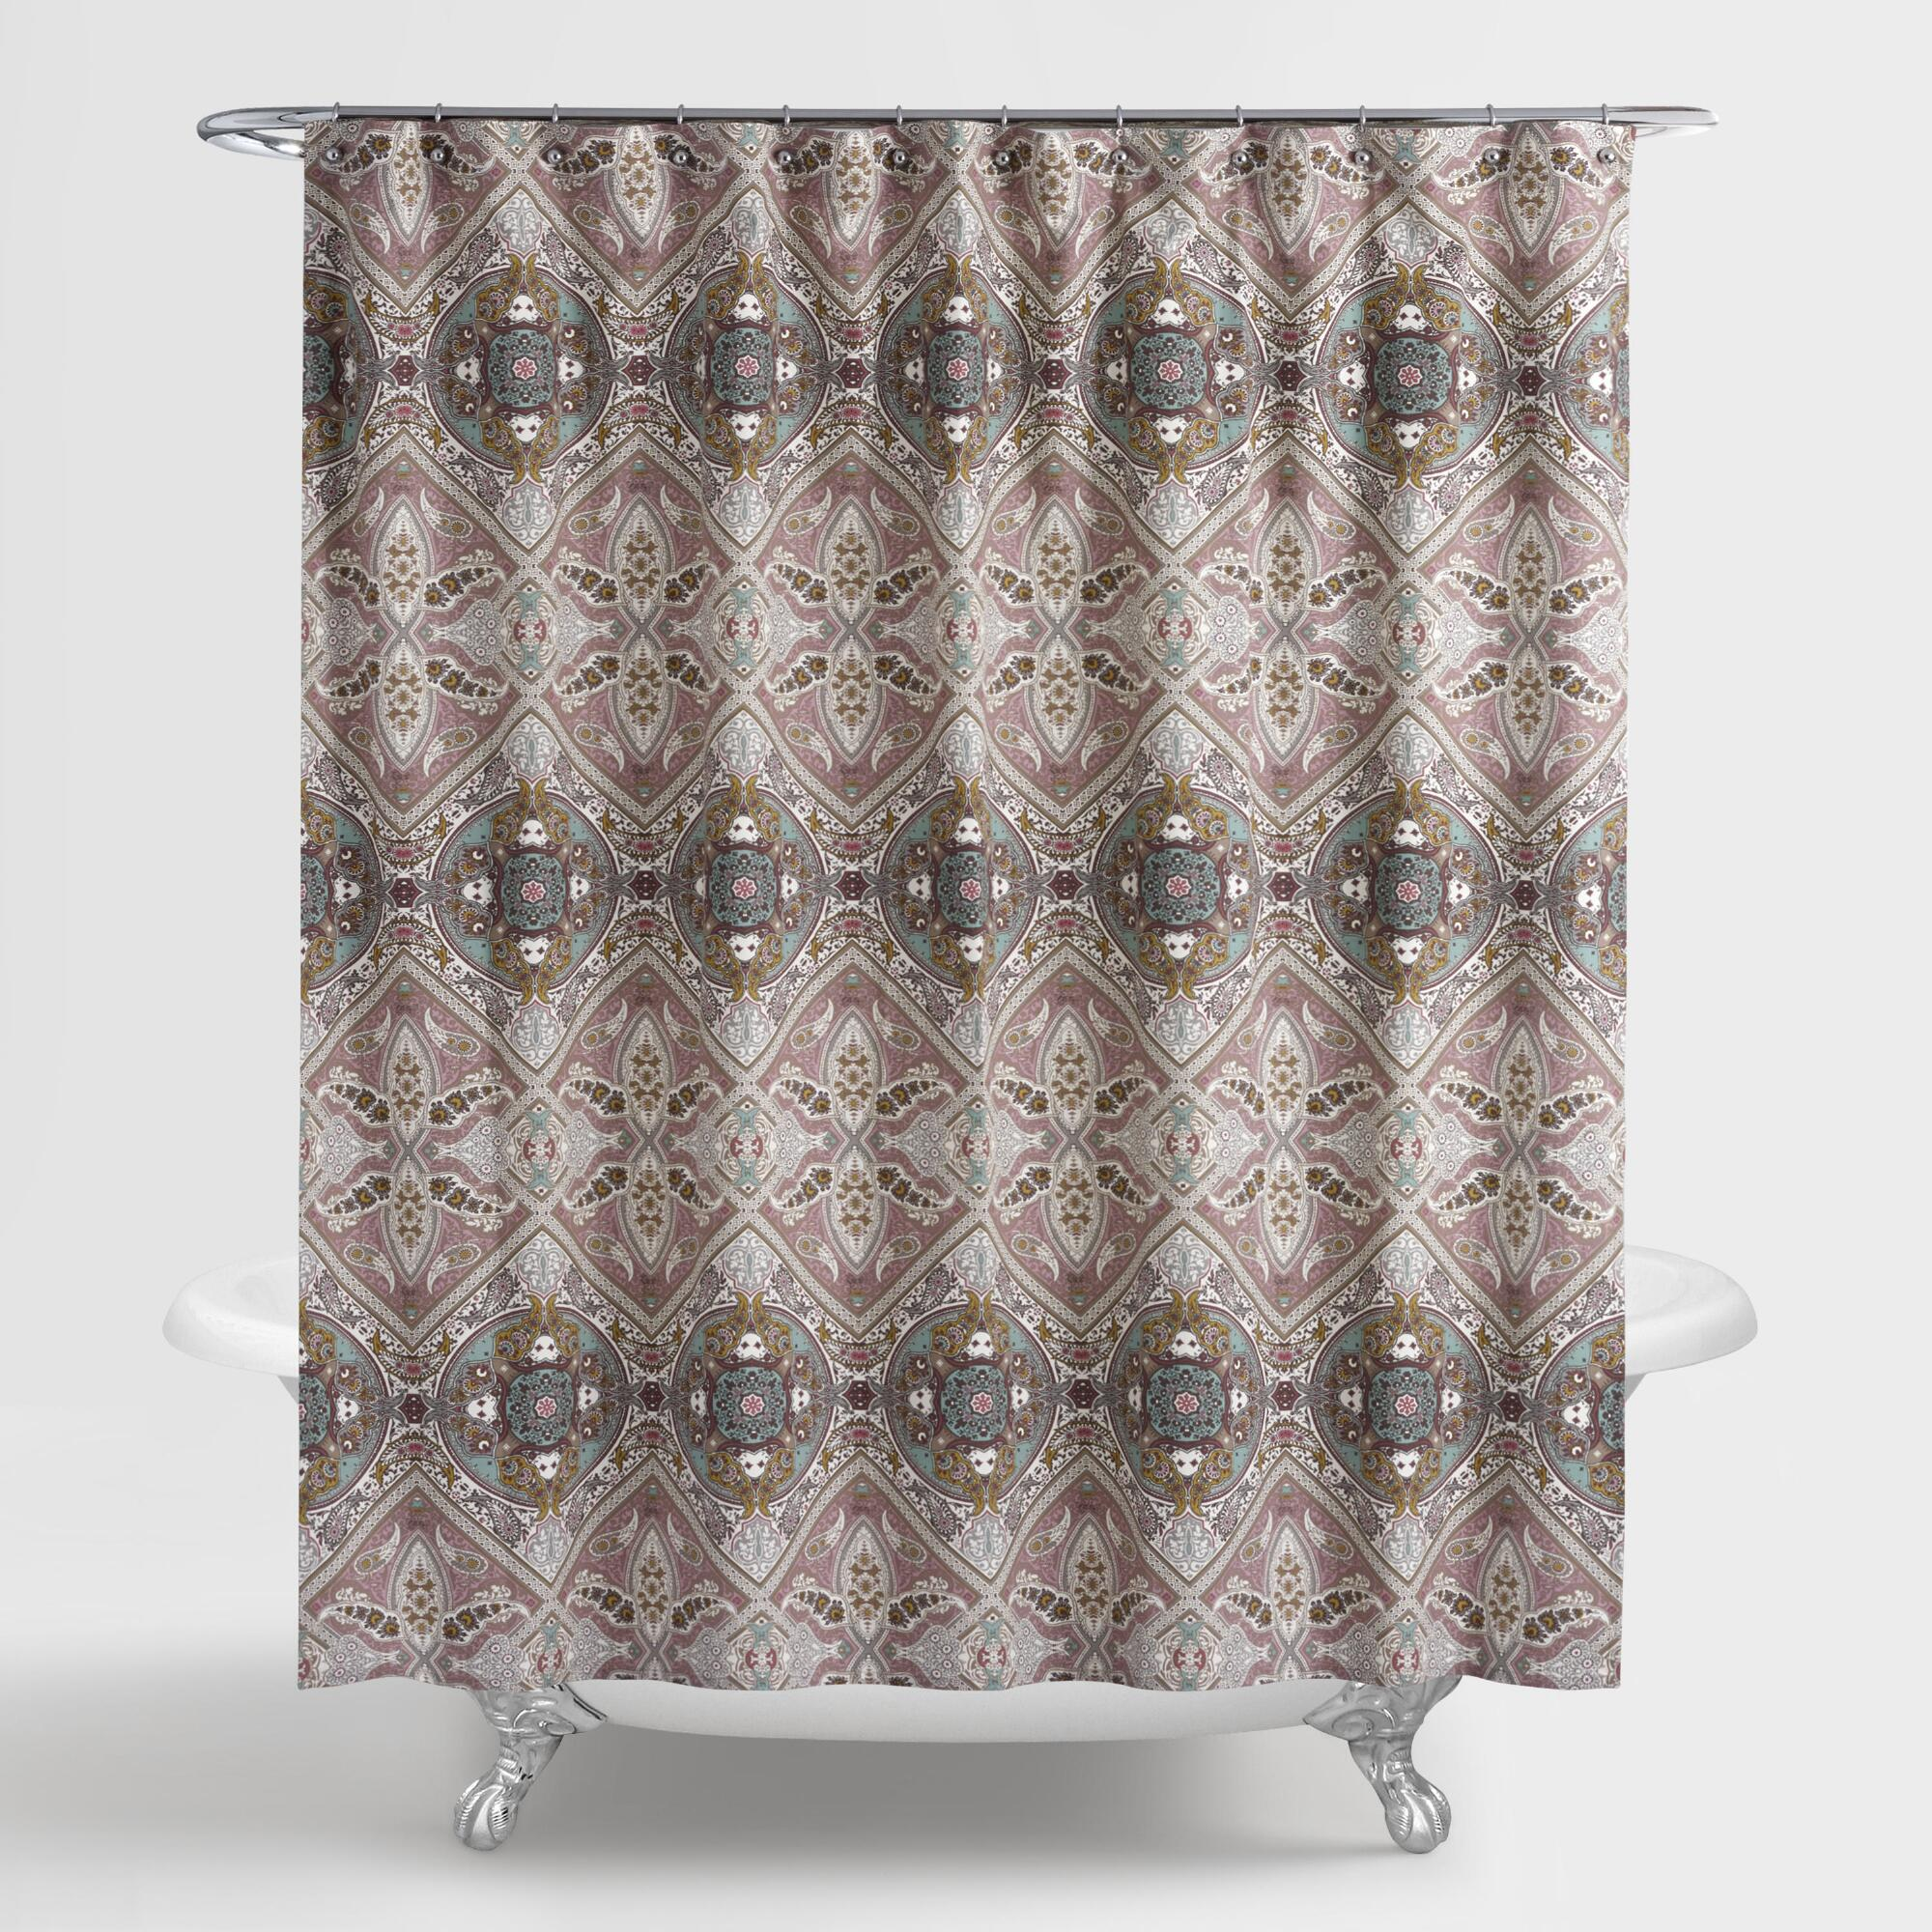 Custom Printed Shower Curtains Uk Curtain Menzilperde Net